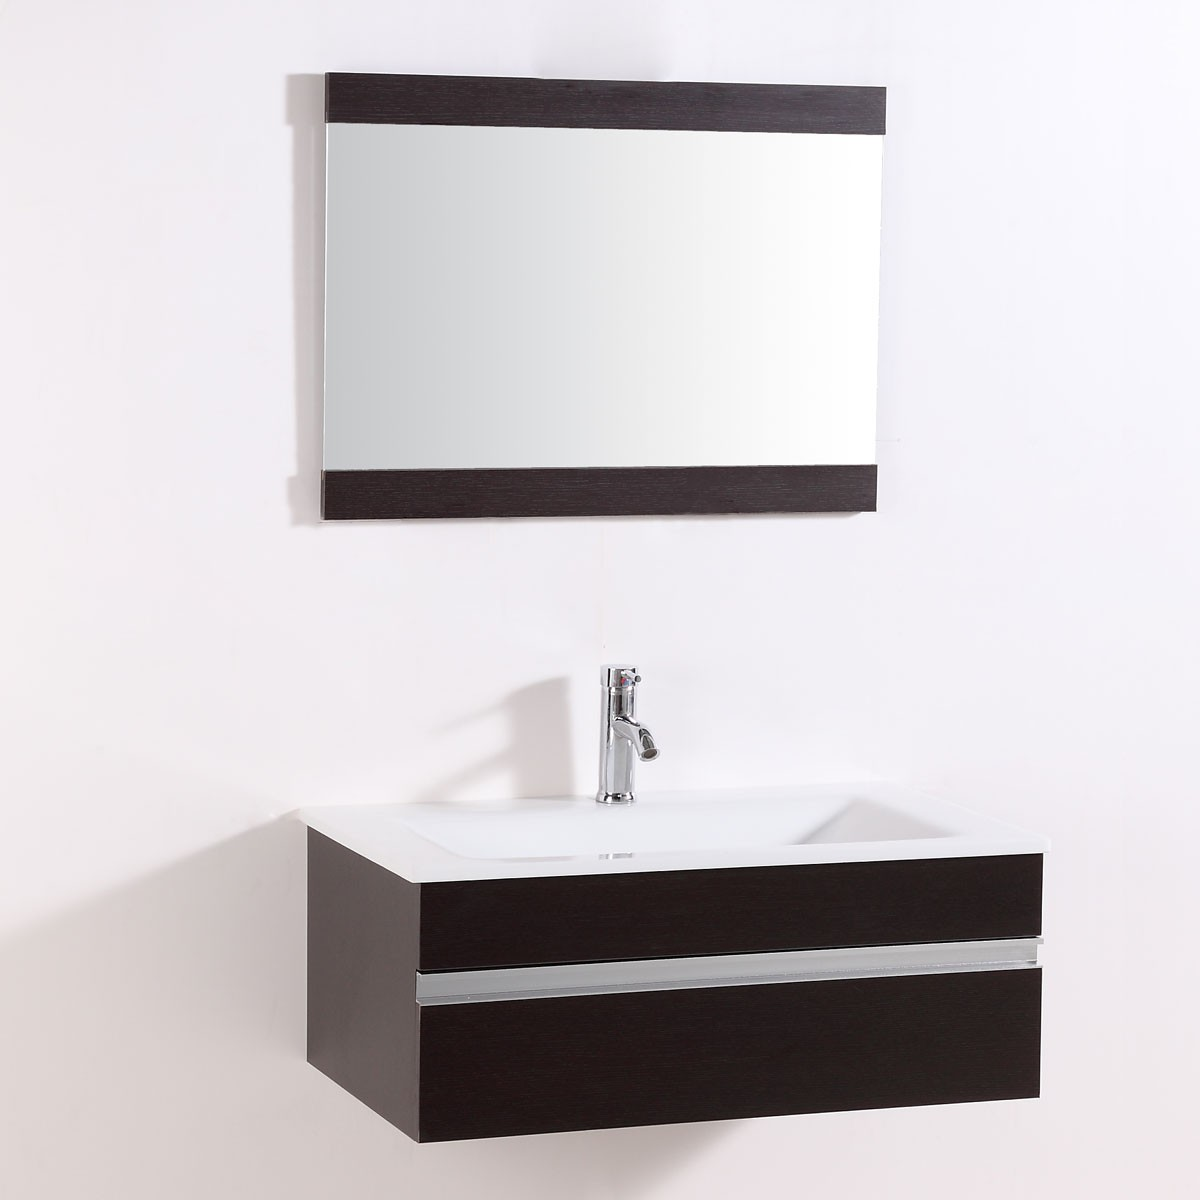 32 In. Wall Mount Bathroom Vanity Set with Single Sink and Mirror (DK-TH9021D-SET)